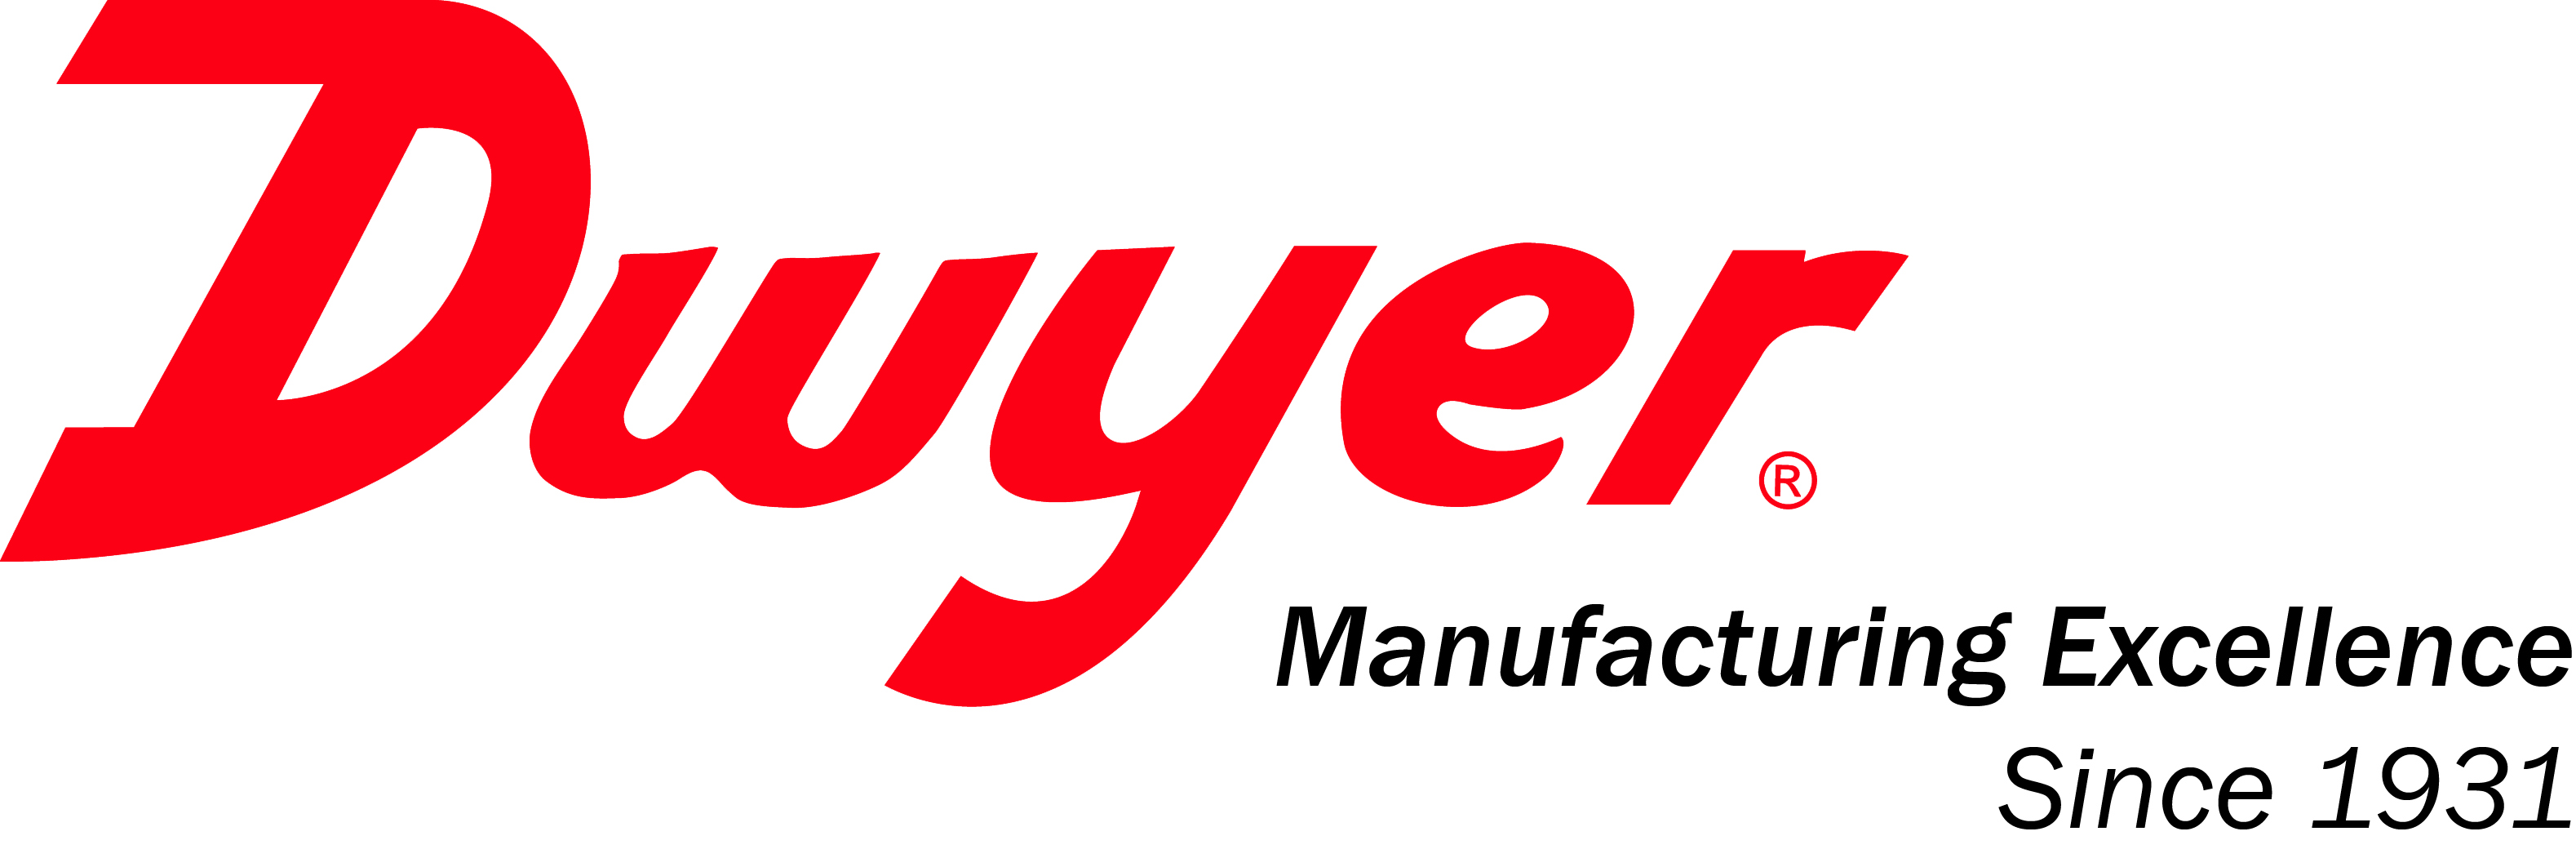 Dwyer Instruments, Logo